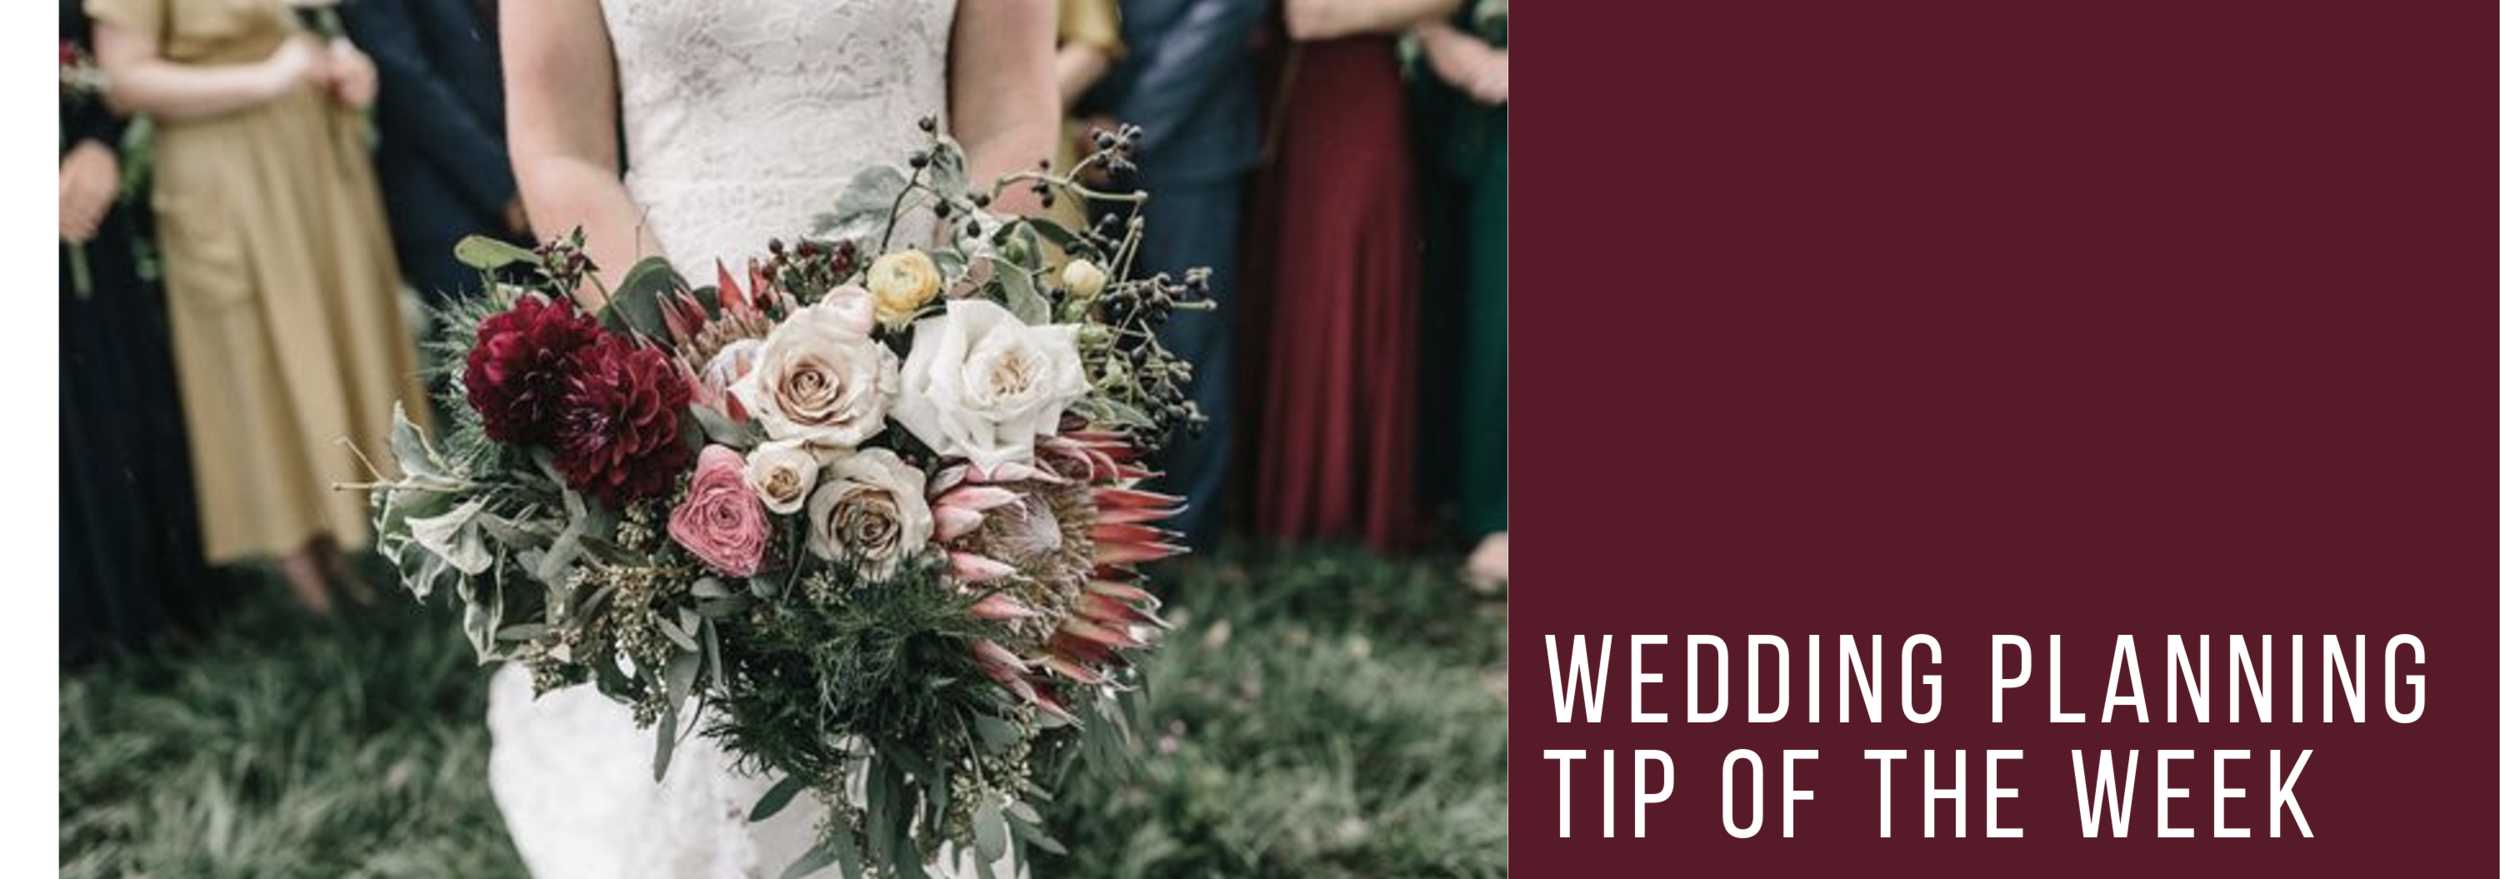 ivory-and-beau-blog-current-happenings-wedding-planning-tip-of-the-week.png